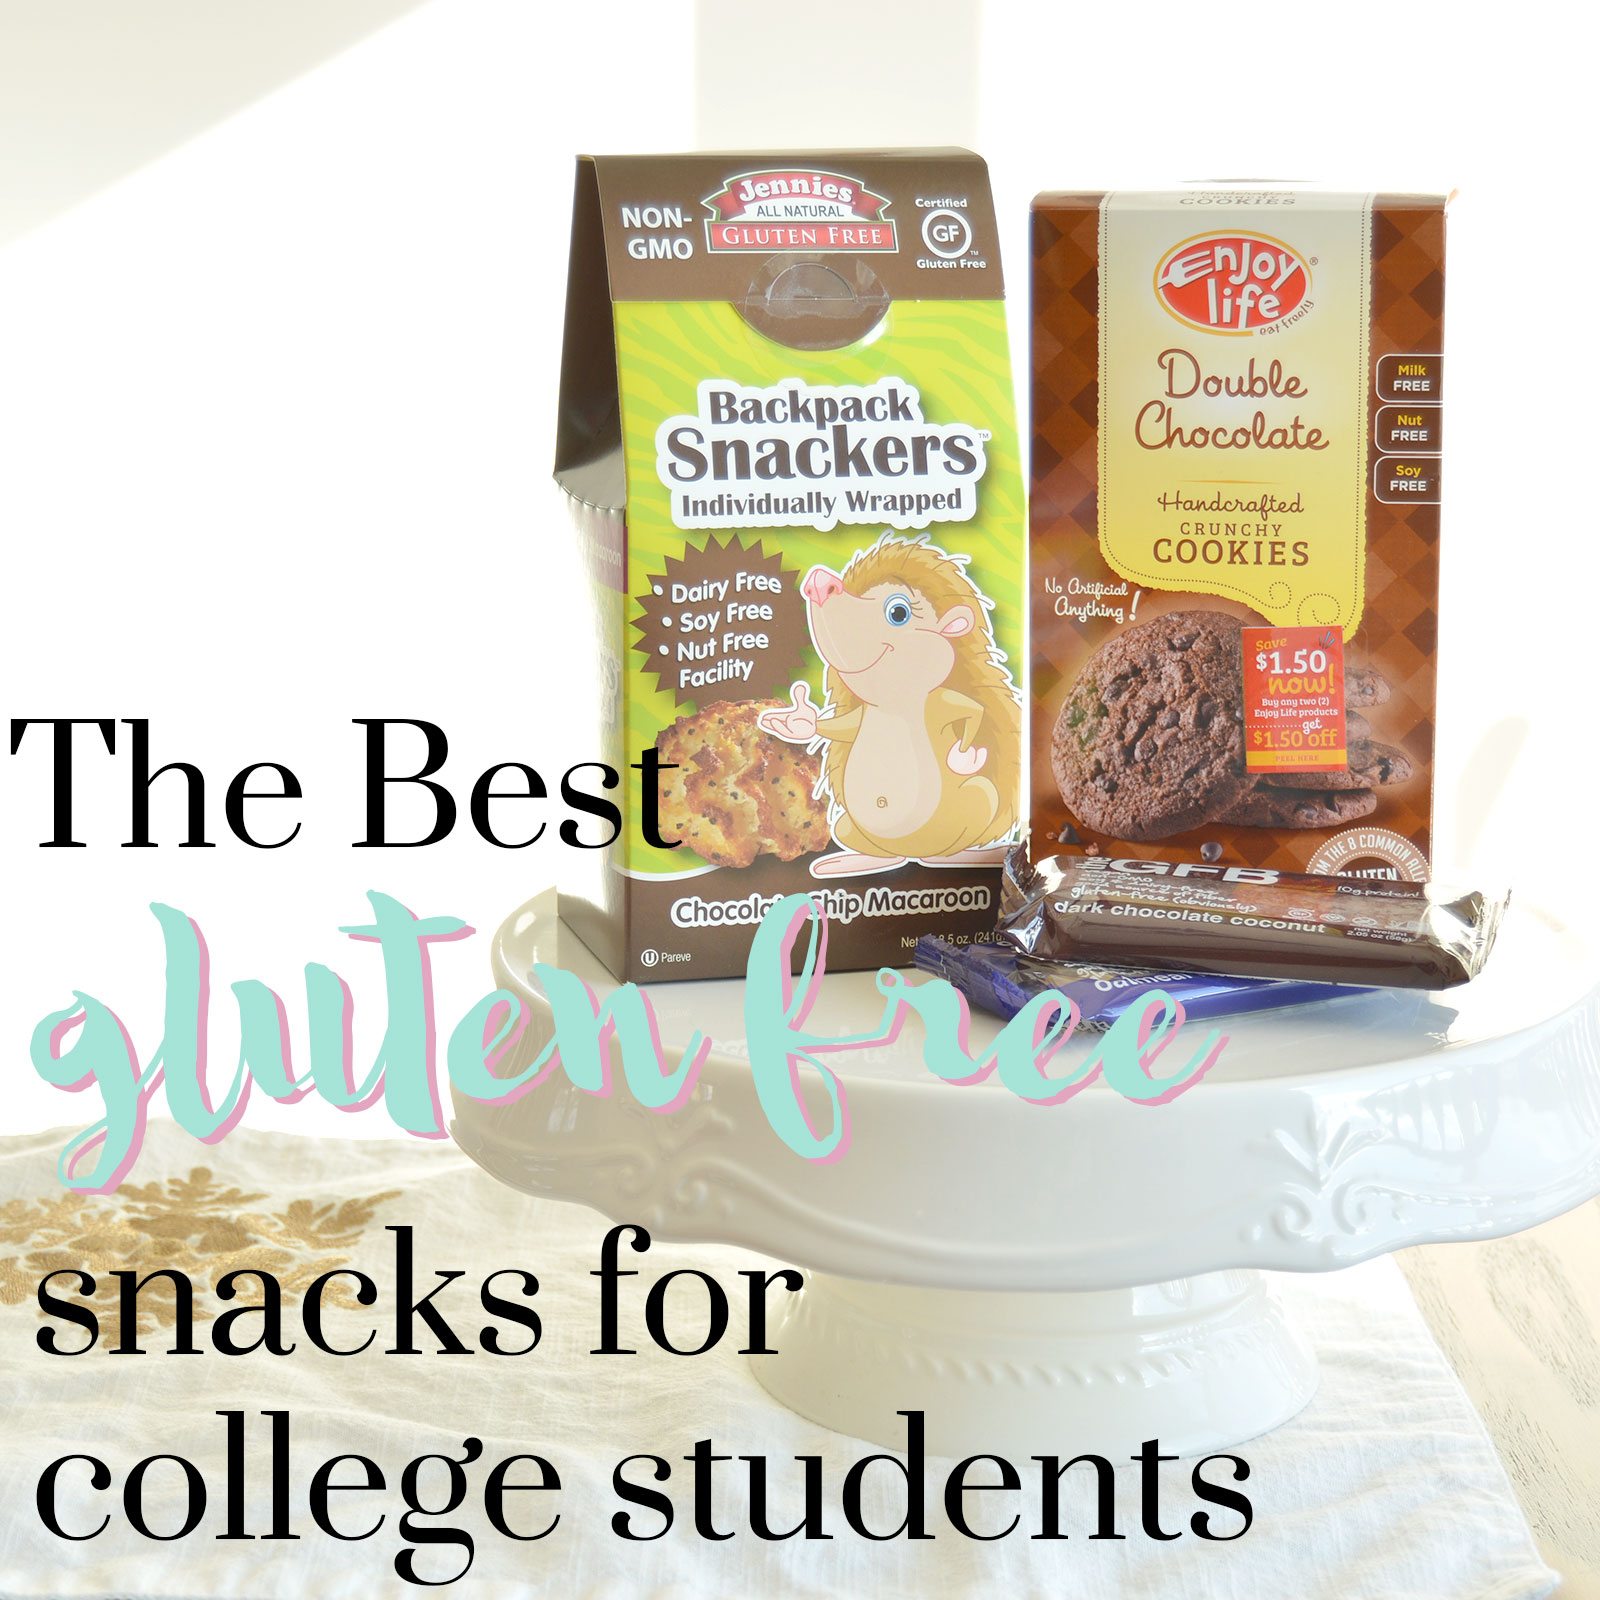 The Best Gluten Free Snacks for College Students